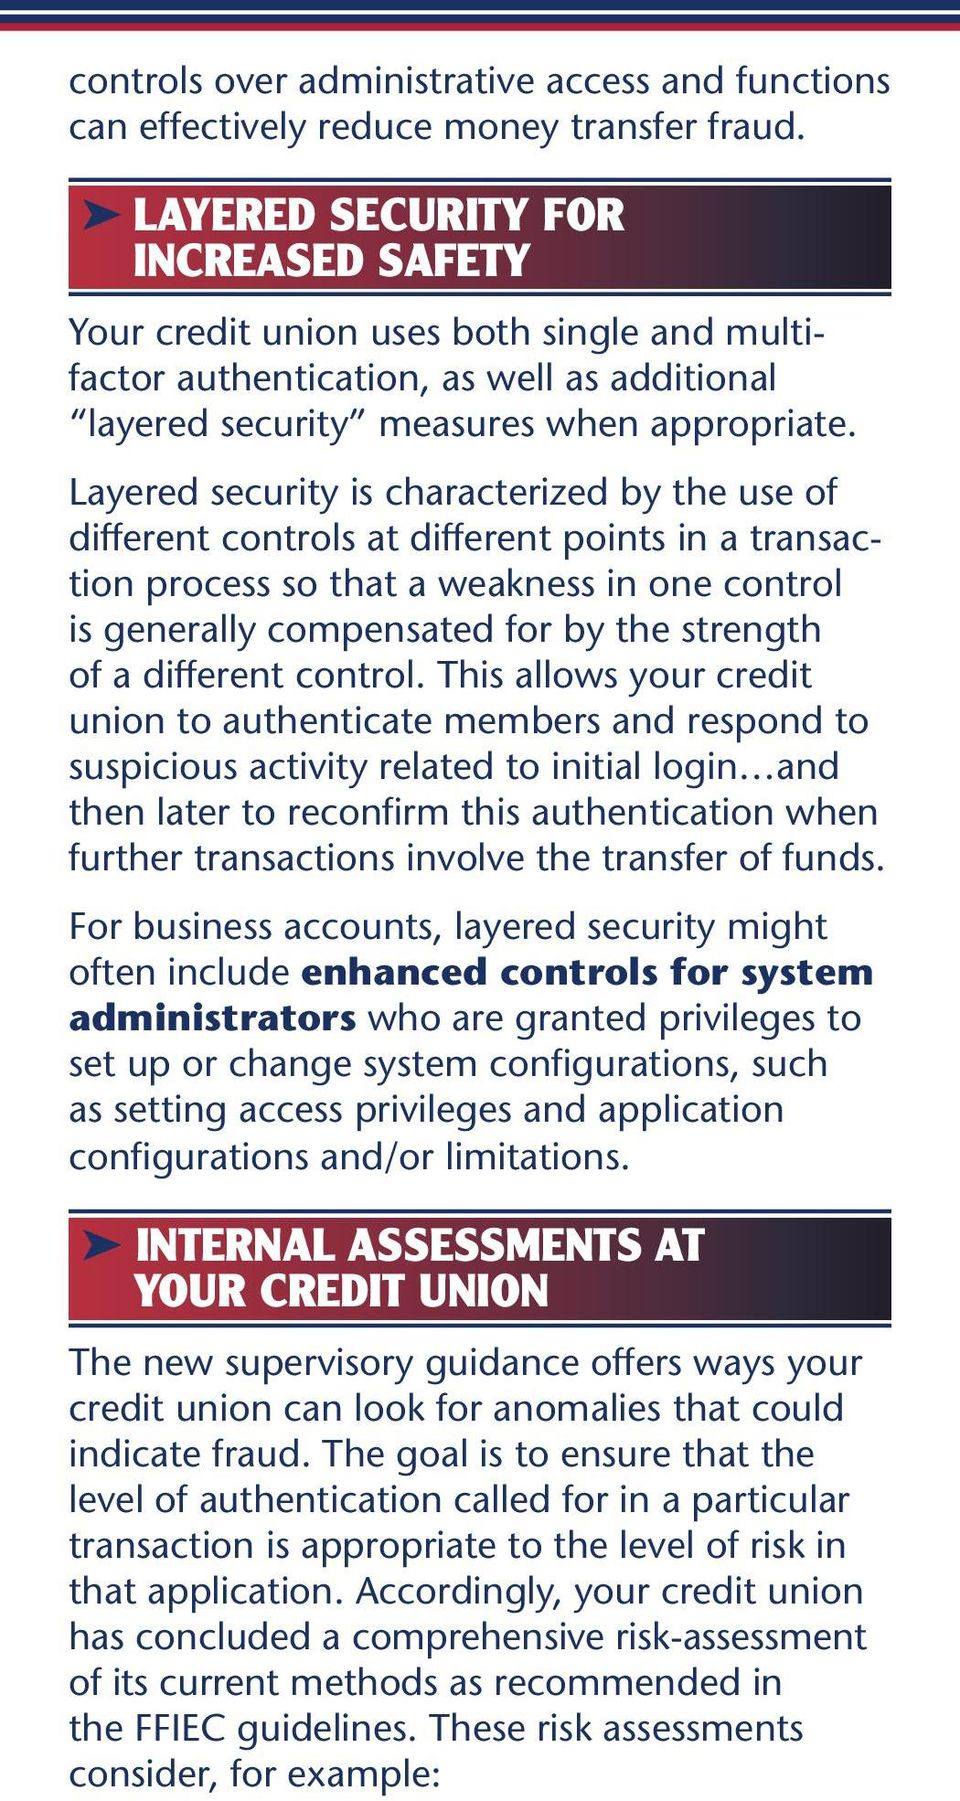 Layered security is characterized by the use of different controls at different points in a transaction process so that a weakness in one control is generally compensated for by the strength of a